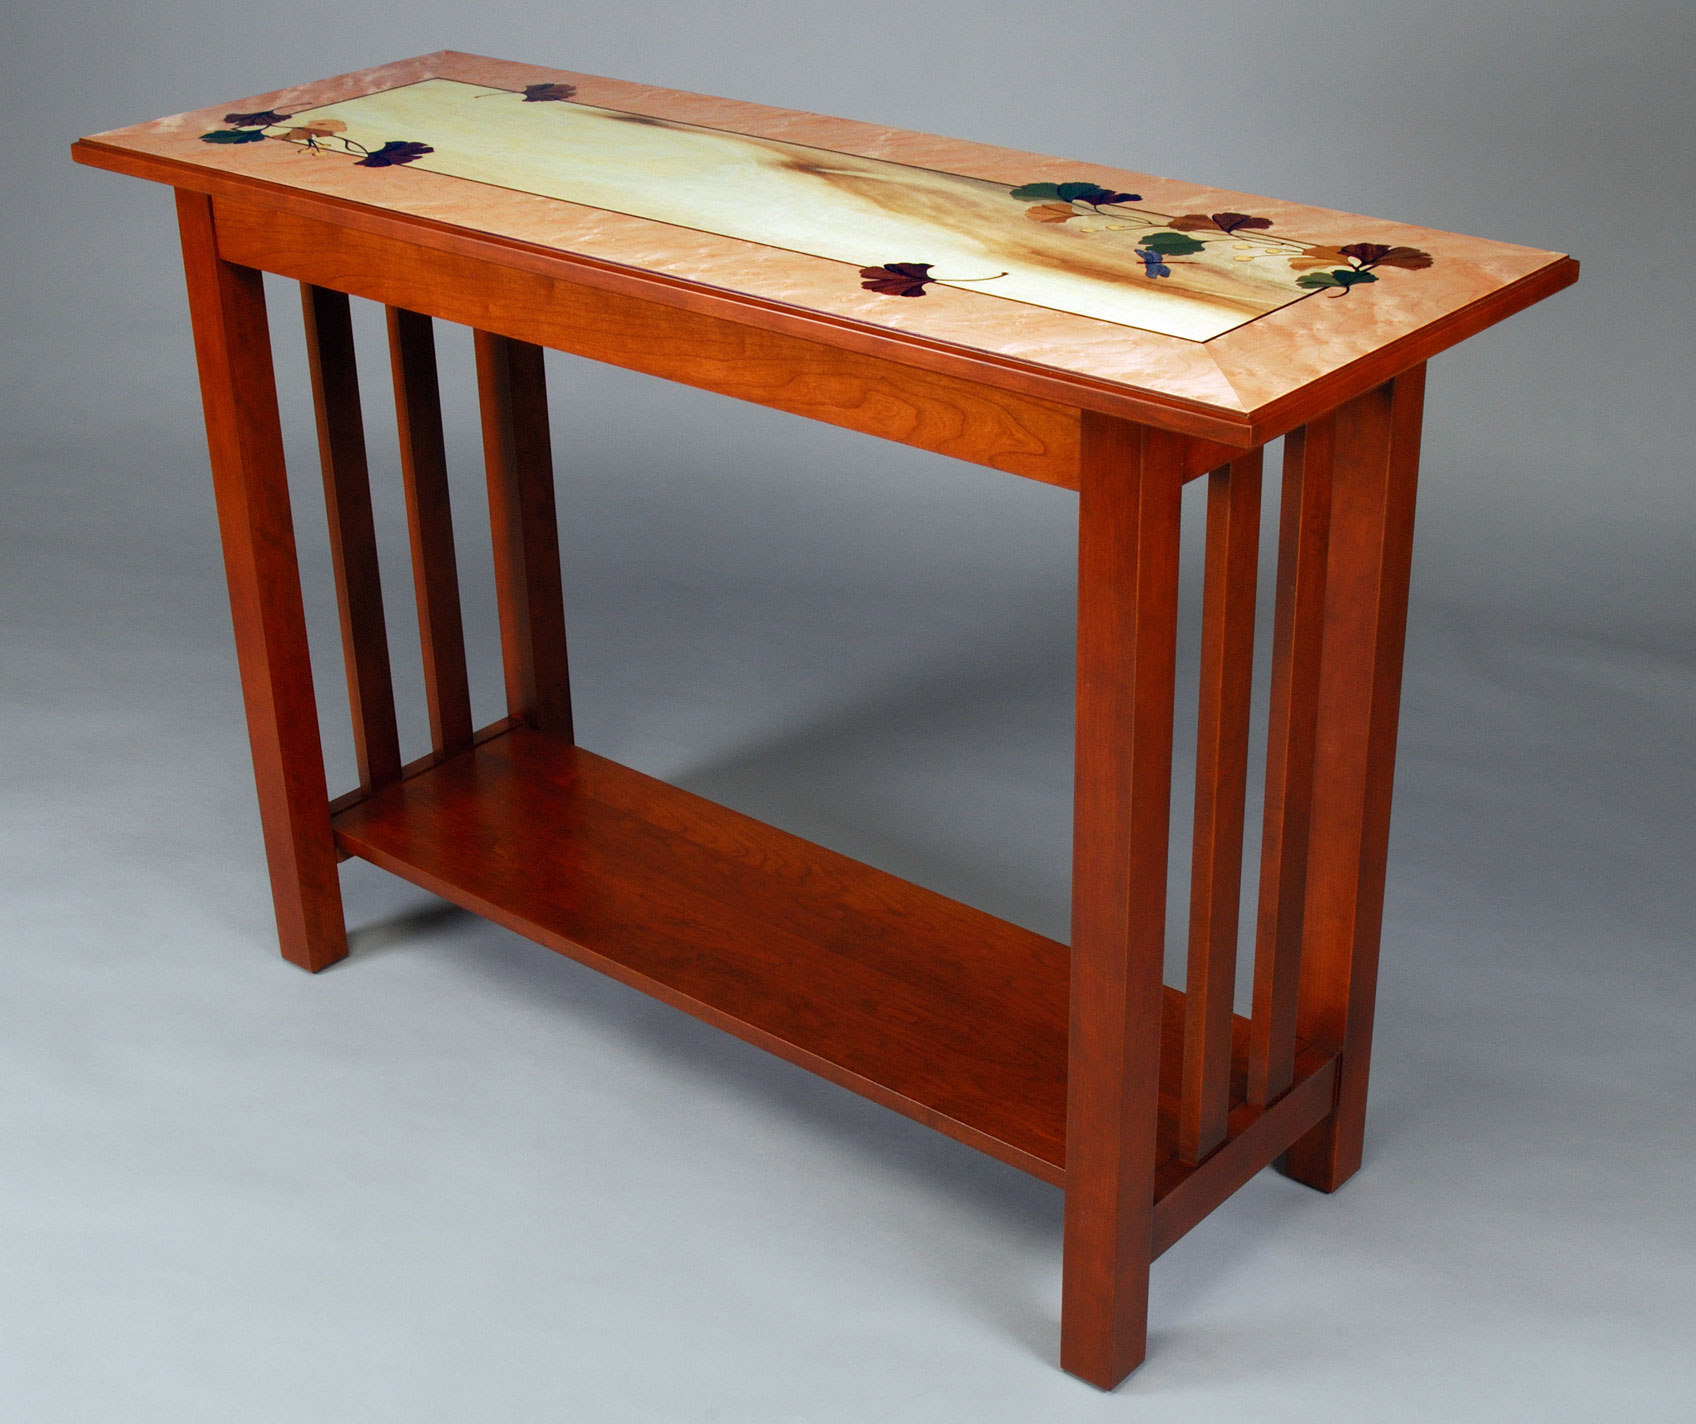 Ginkgo Leaves Console Table 131 Piece Inlay With 12 Wood regarding Intarsia Console Tables (Image 10 of 30)